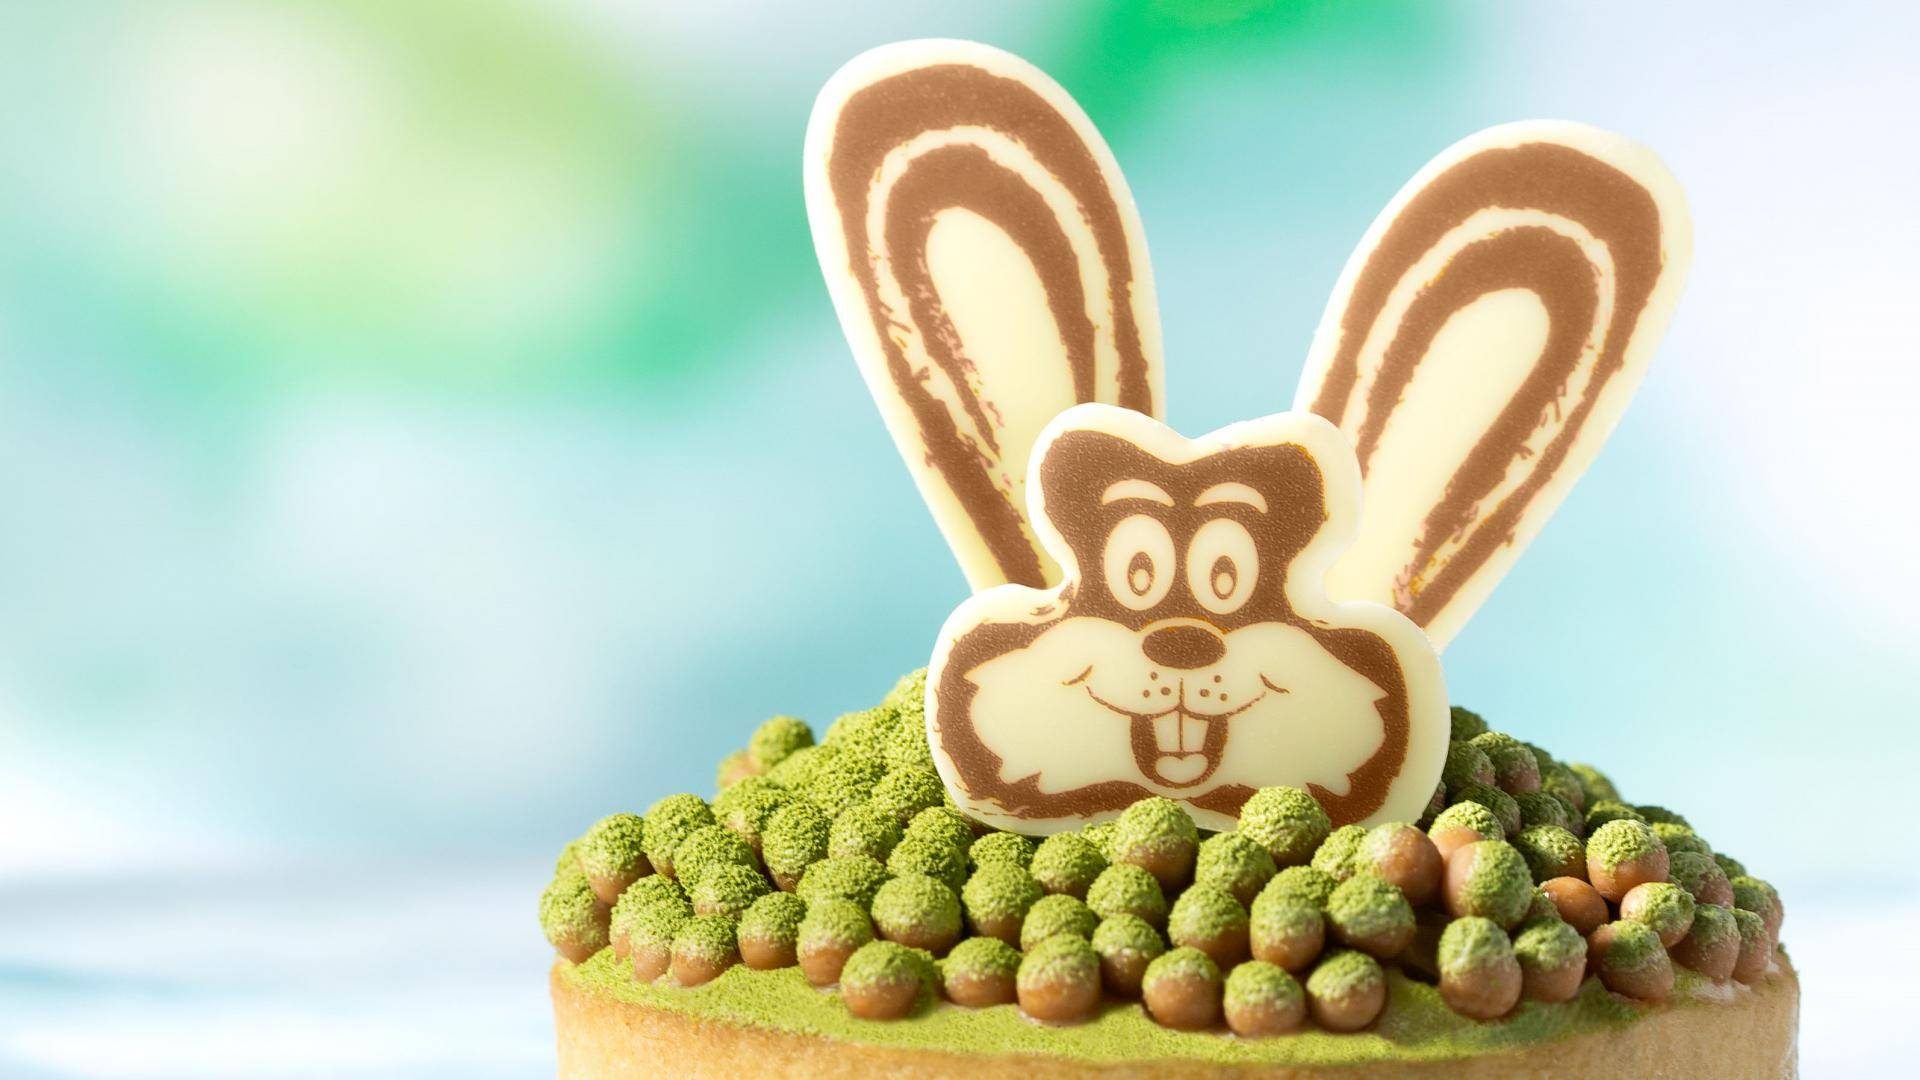 Pastry with chocolate decorations bunny